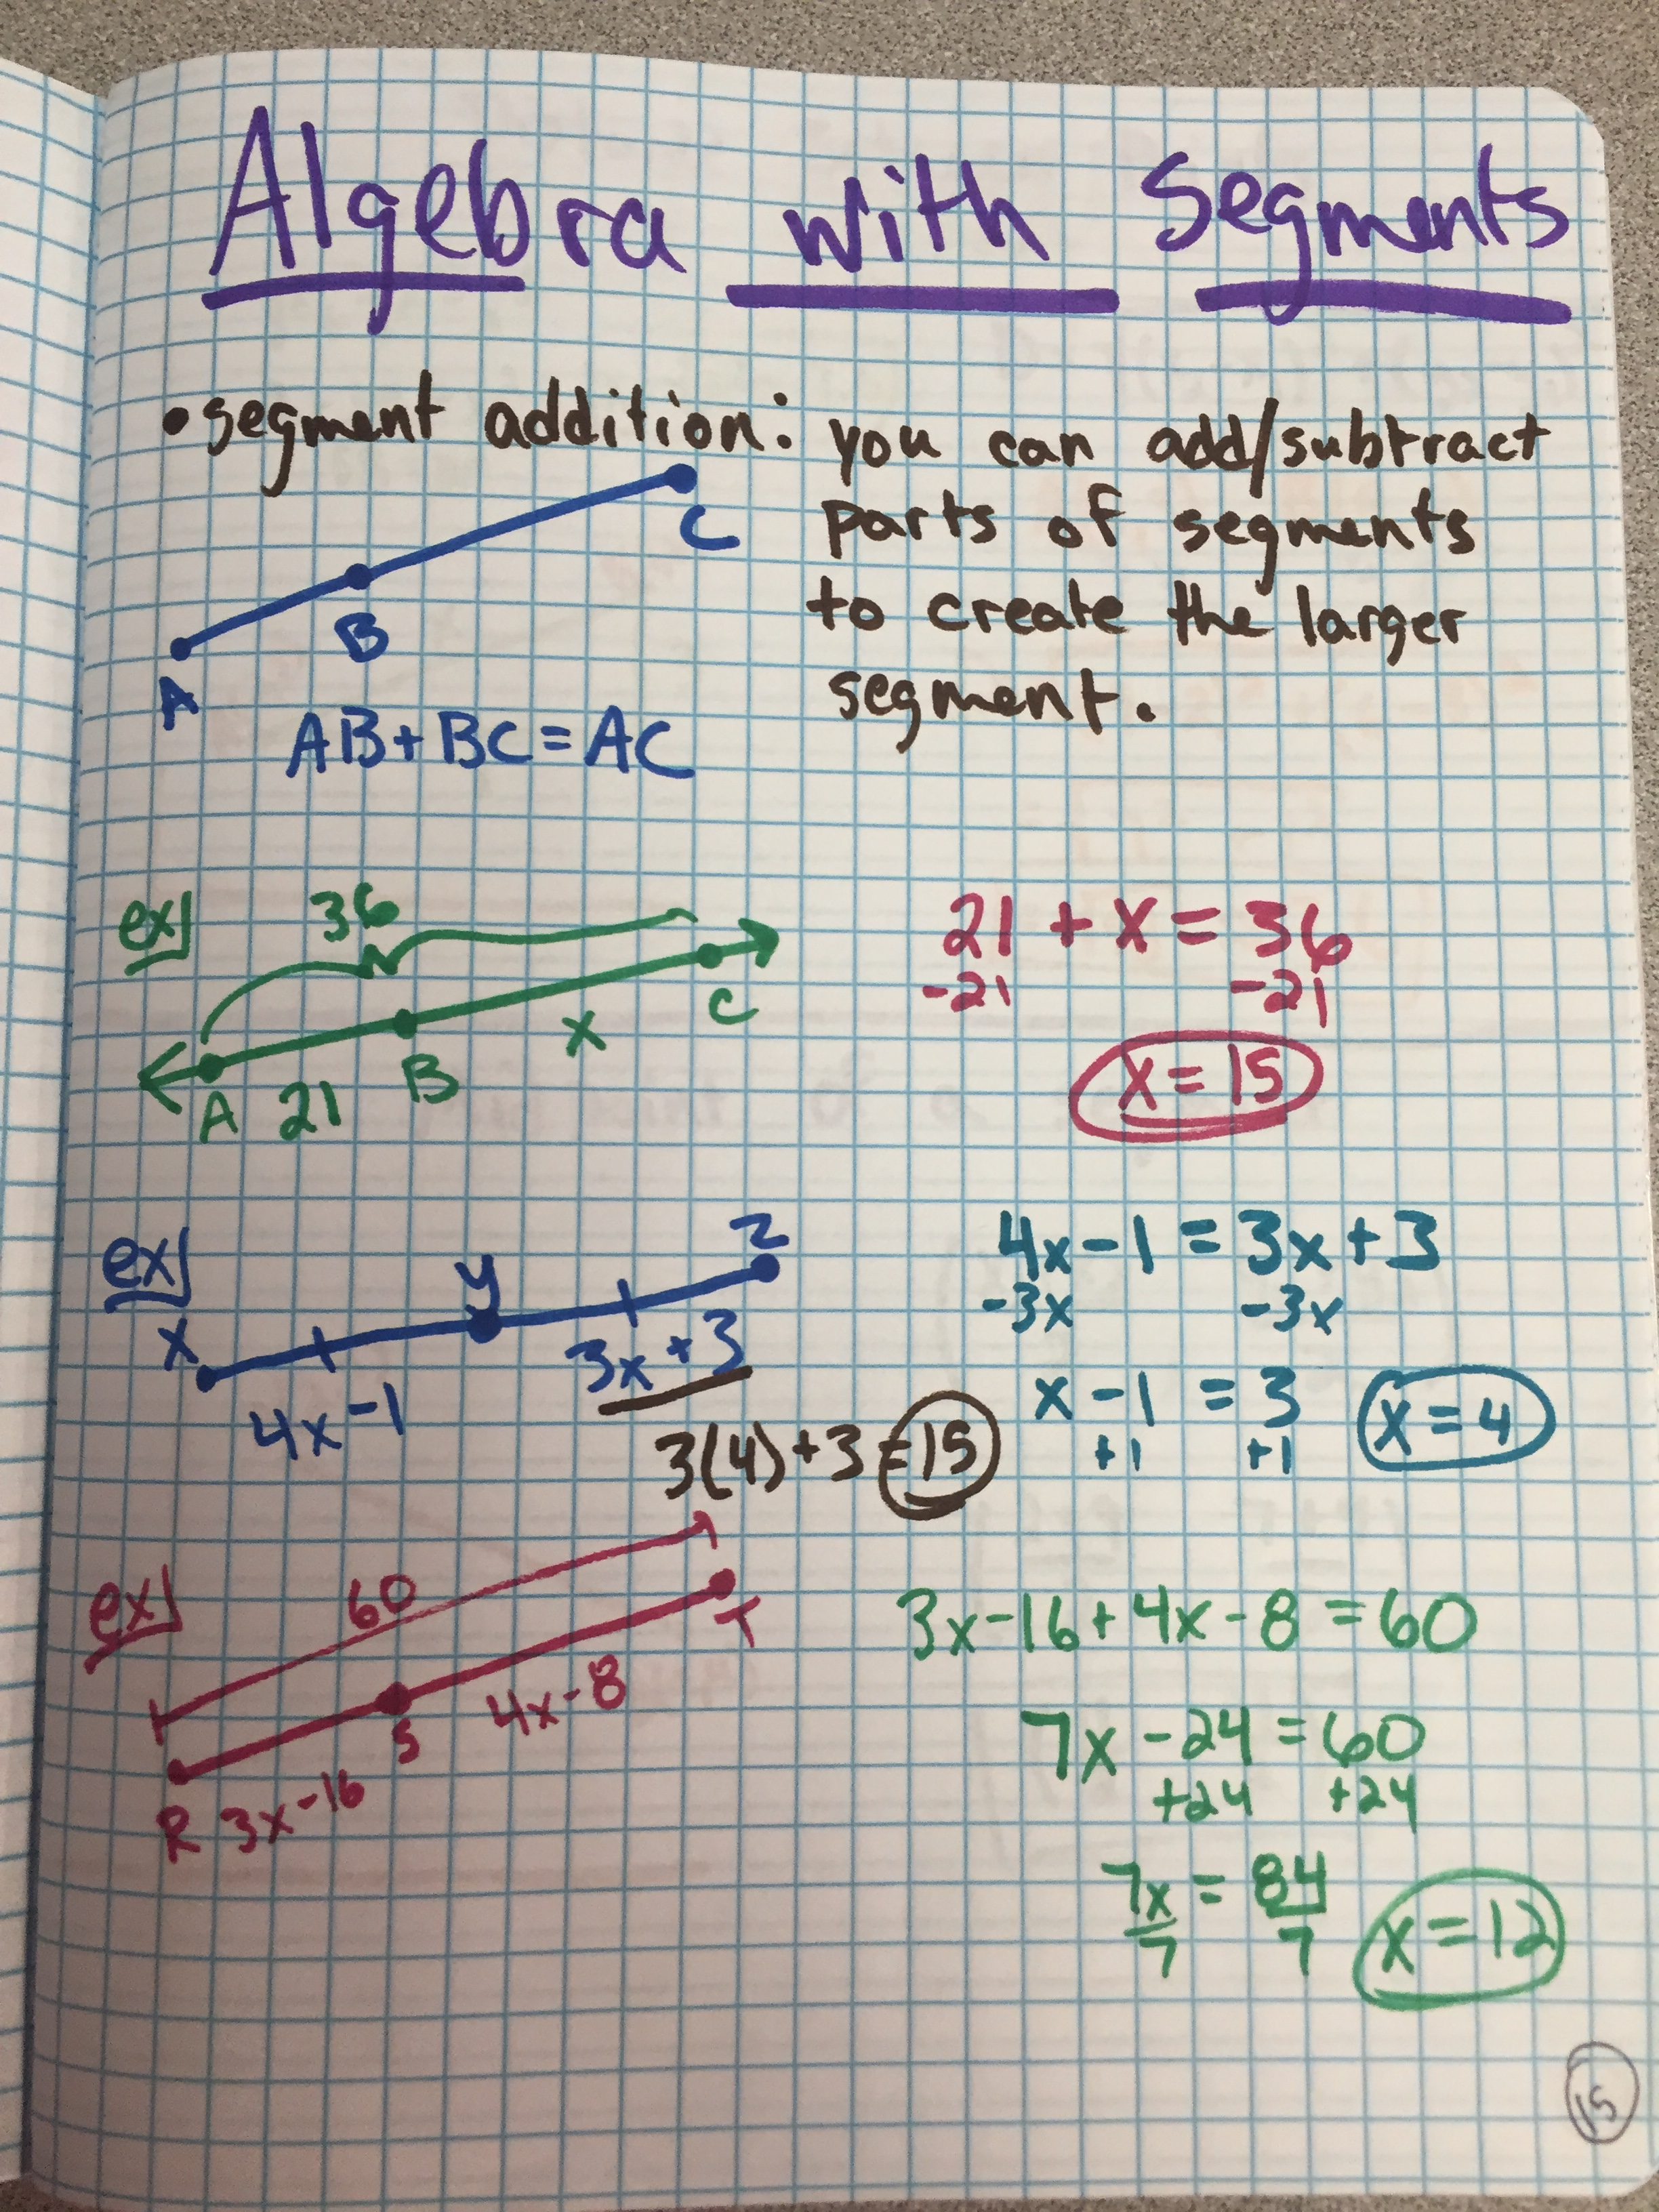 Geometry Worksheet 11 Congruence And Segment Addition